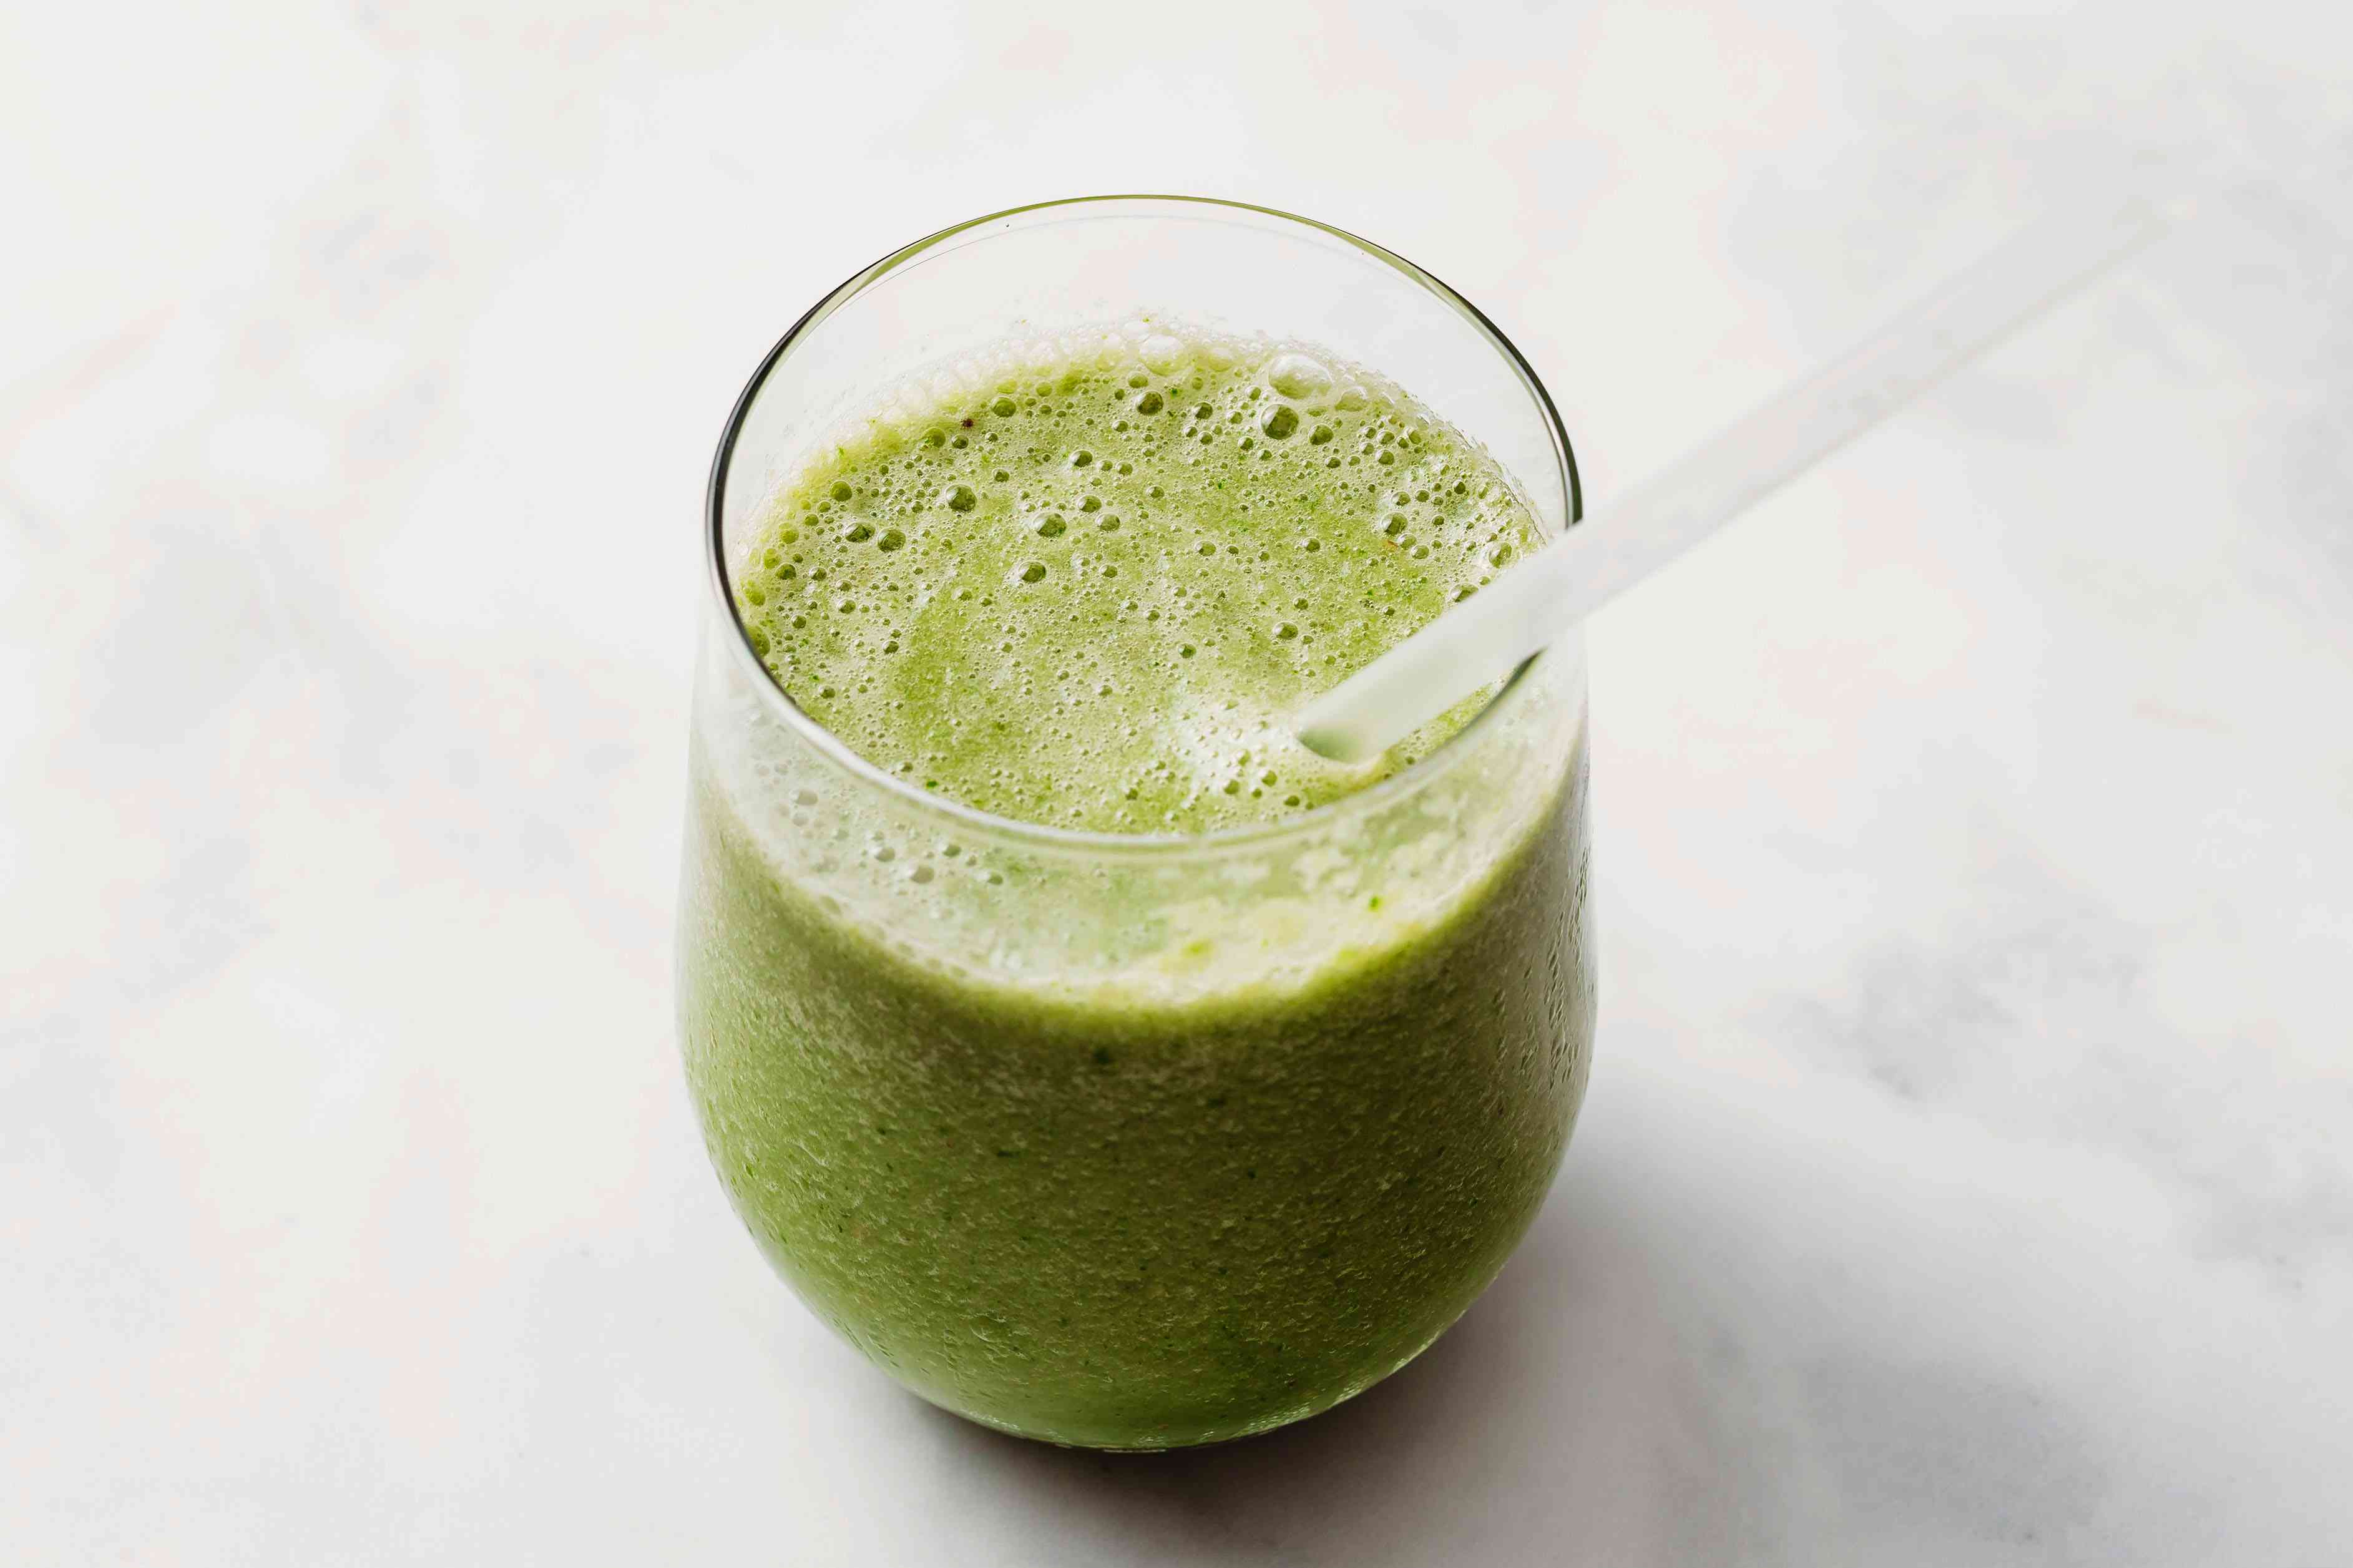 Green Pear Smoothie in a glass